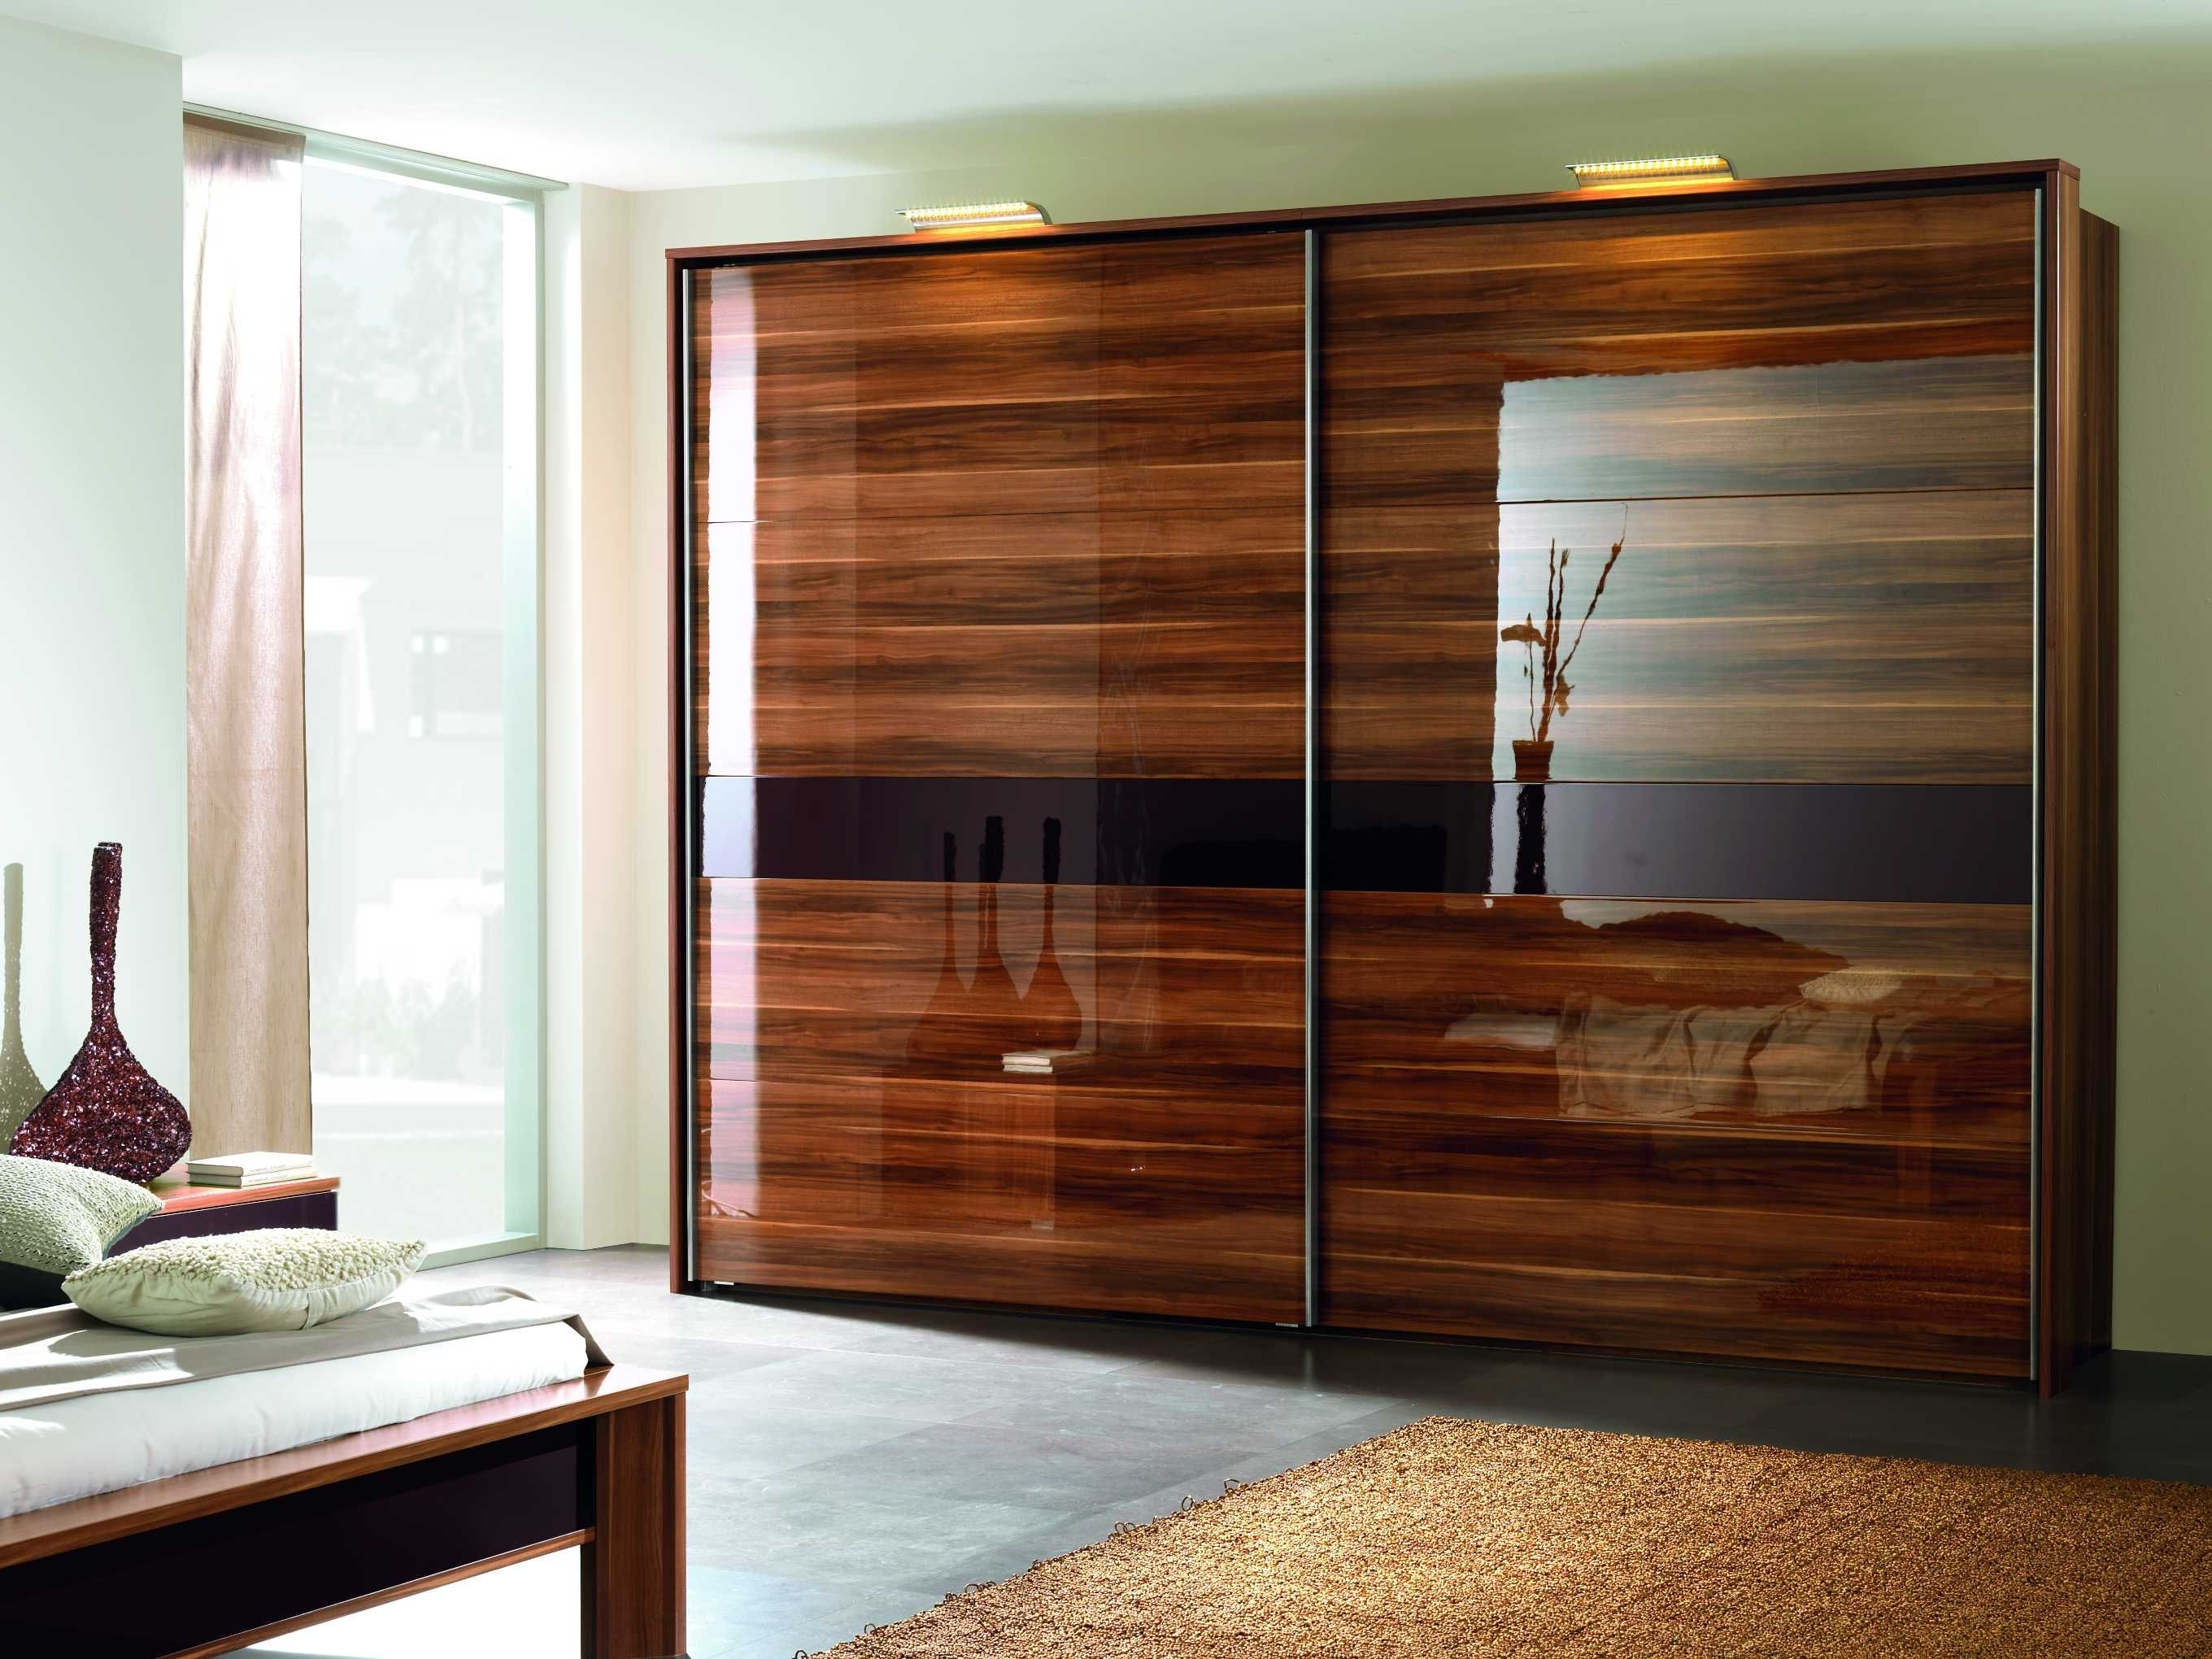 Cream Gloss Wardrobes With Preferred Furniture, Luxury Wardrobe Design With Sliding Doors And Cool (View 4 of 15)